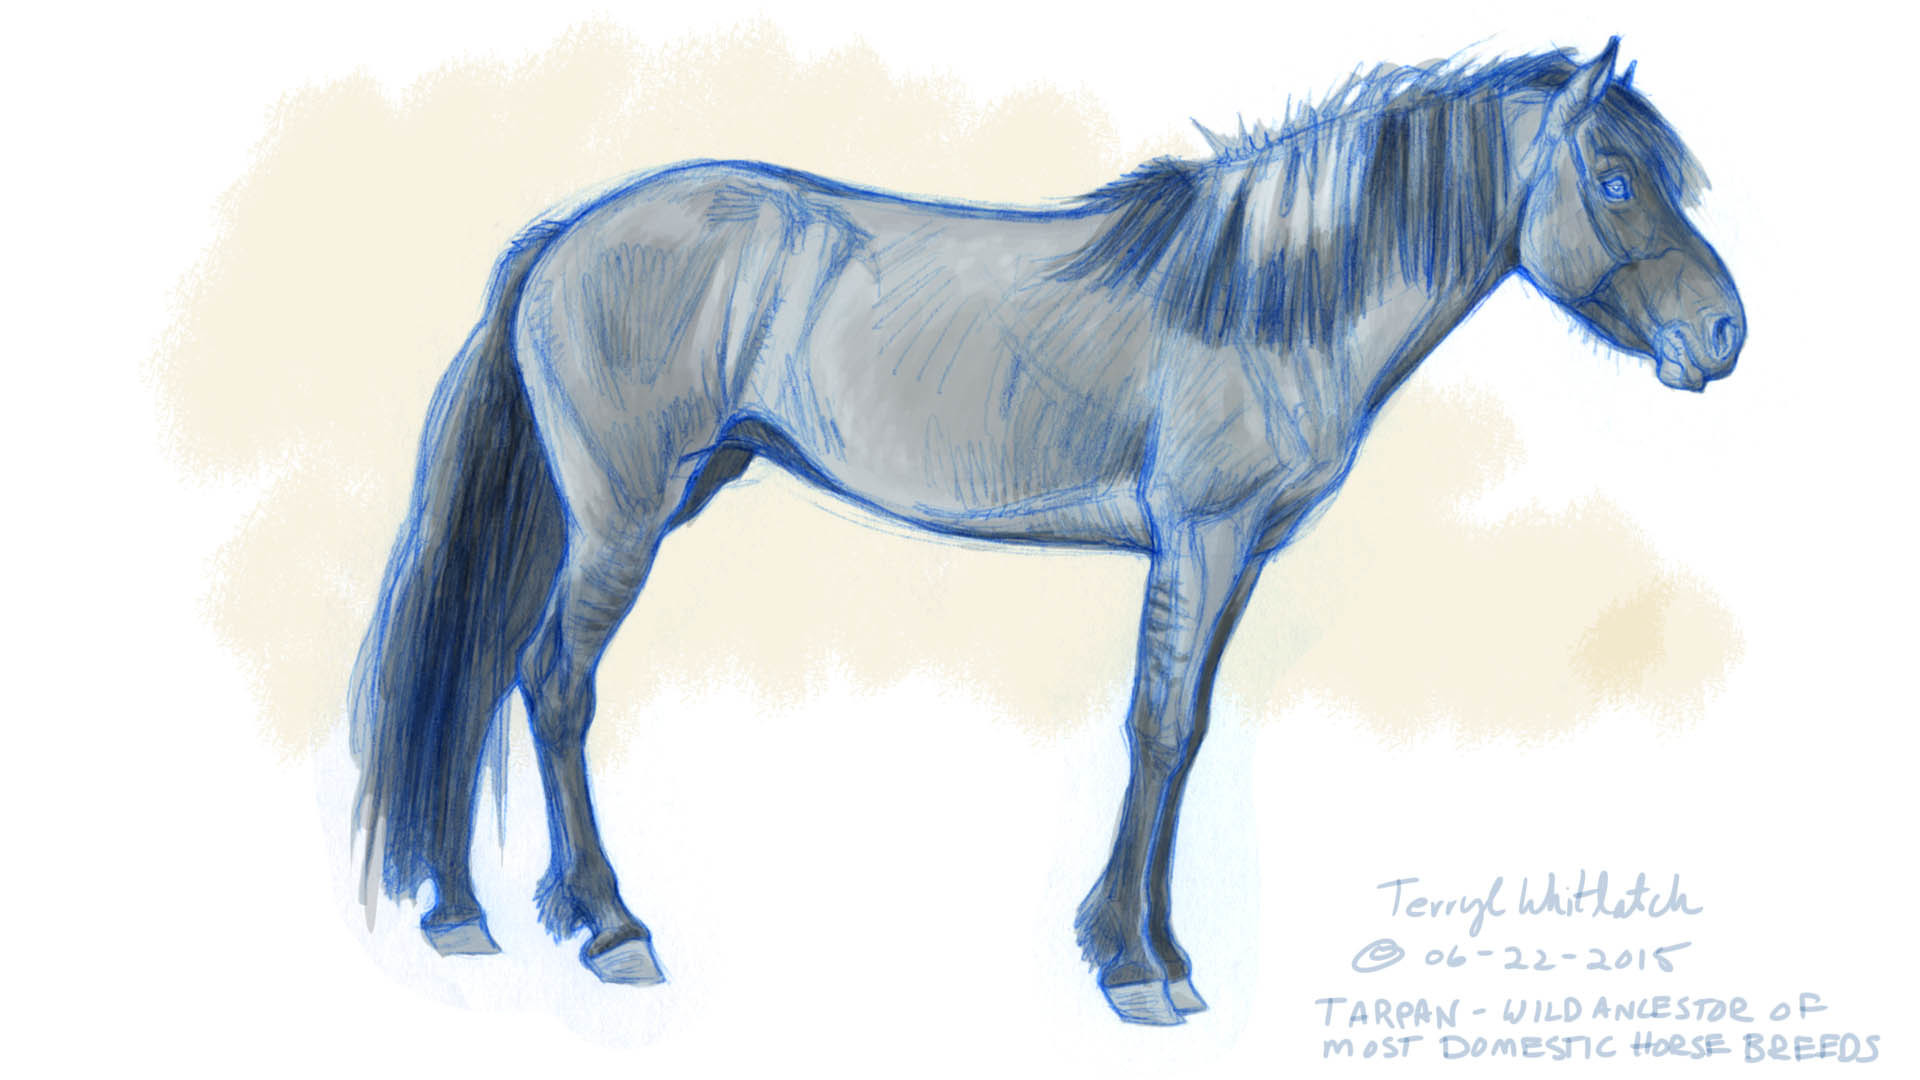 Learn to draw horses, advises Terryl: they appear more often than any other animal in fine art and animation.